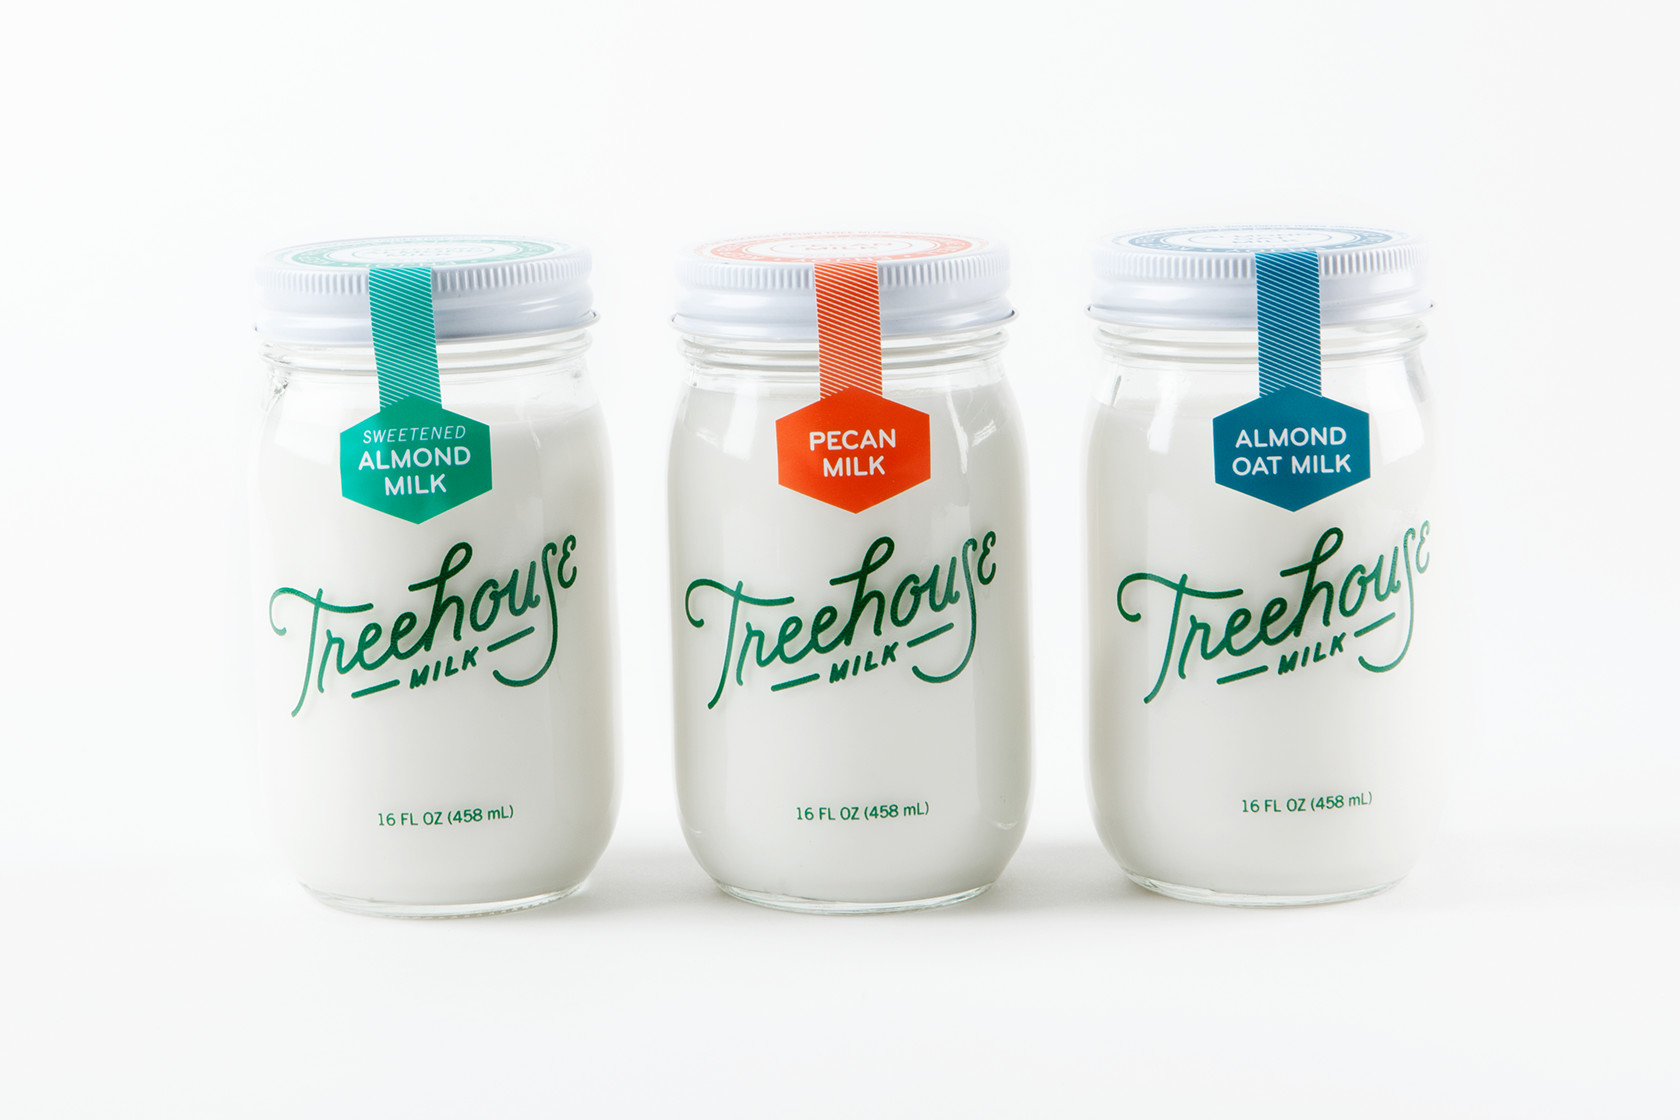 juku-treehouse-milk-2